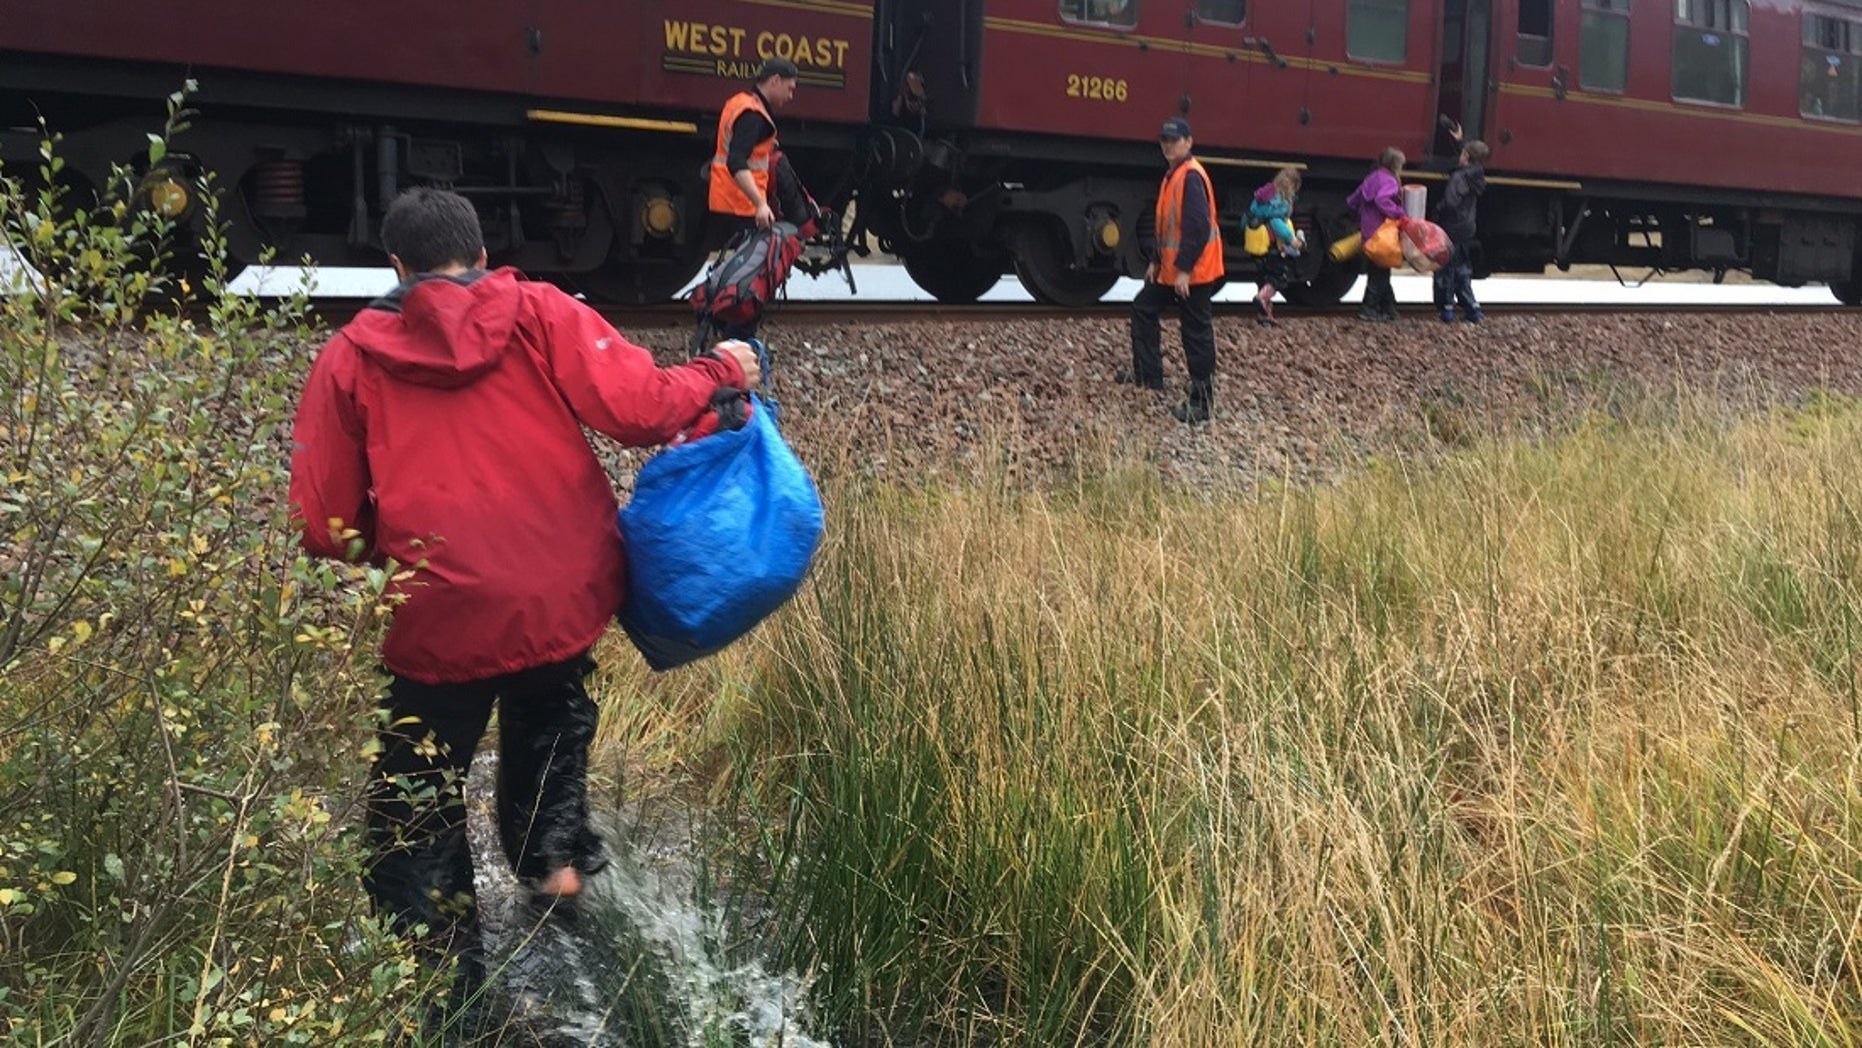 The Jacobite steam train, which played the Hogwarts Express onscreen, on Friday made an unscheduled stop to pick up a family of six that was stranded when a storm washed away their canoe.